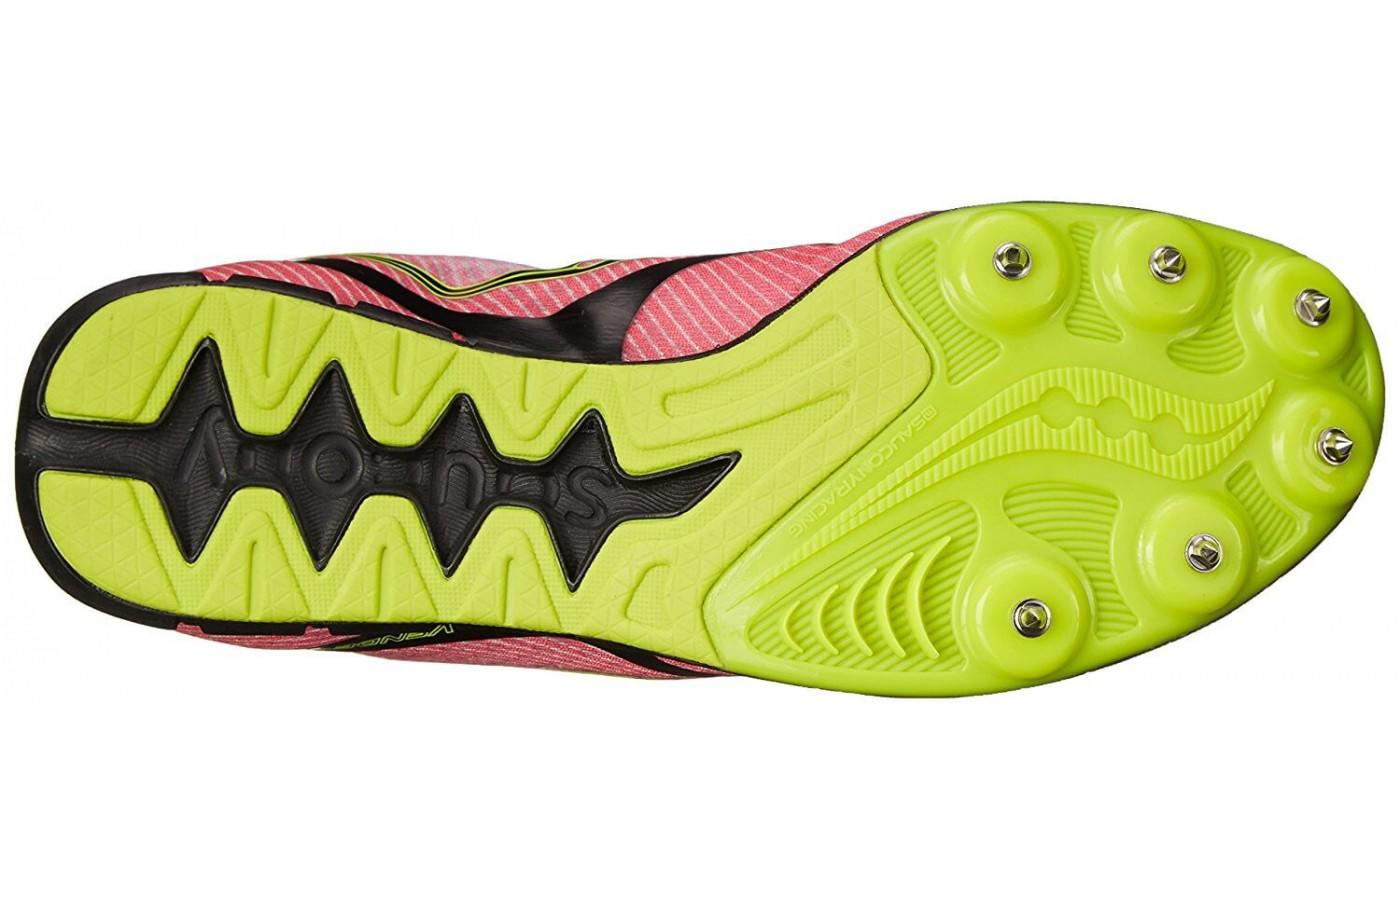 The outsole of the Saucony Vendetta is made up of molded carbon rubber